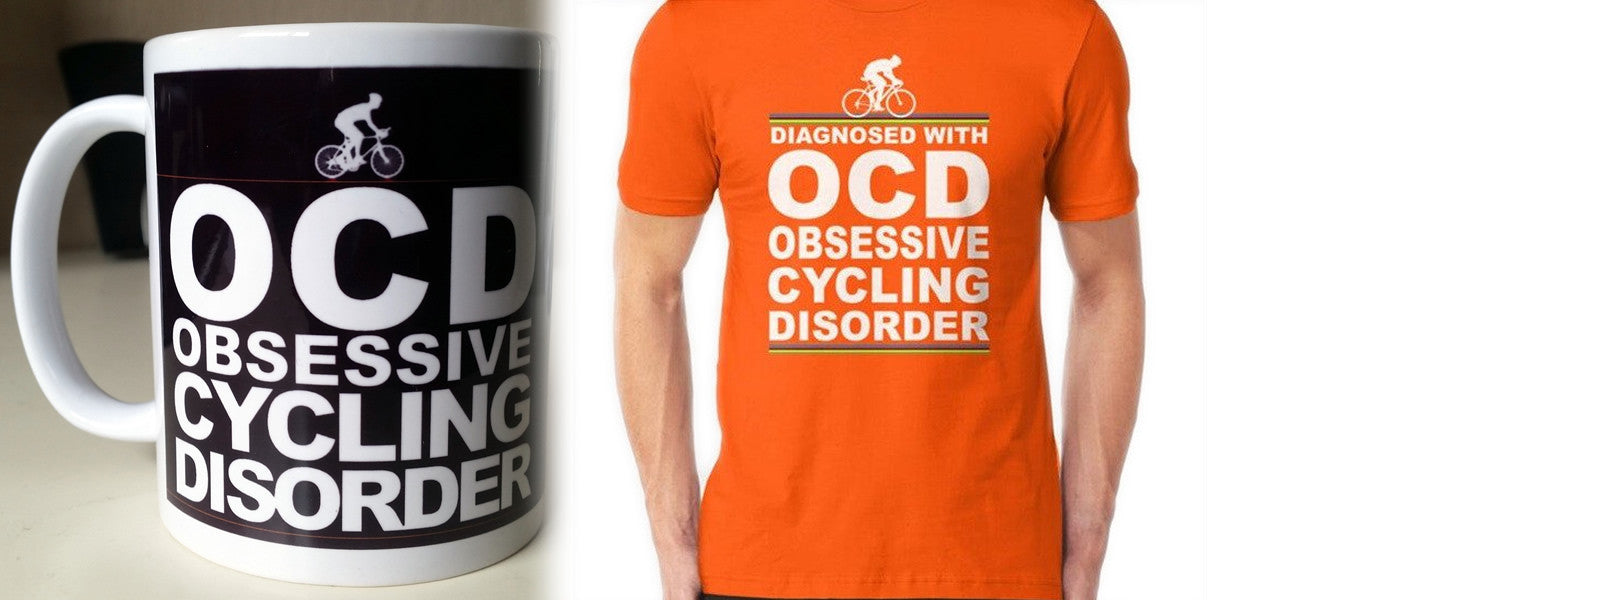 Click here if you have Obsessive Cycling Disorder